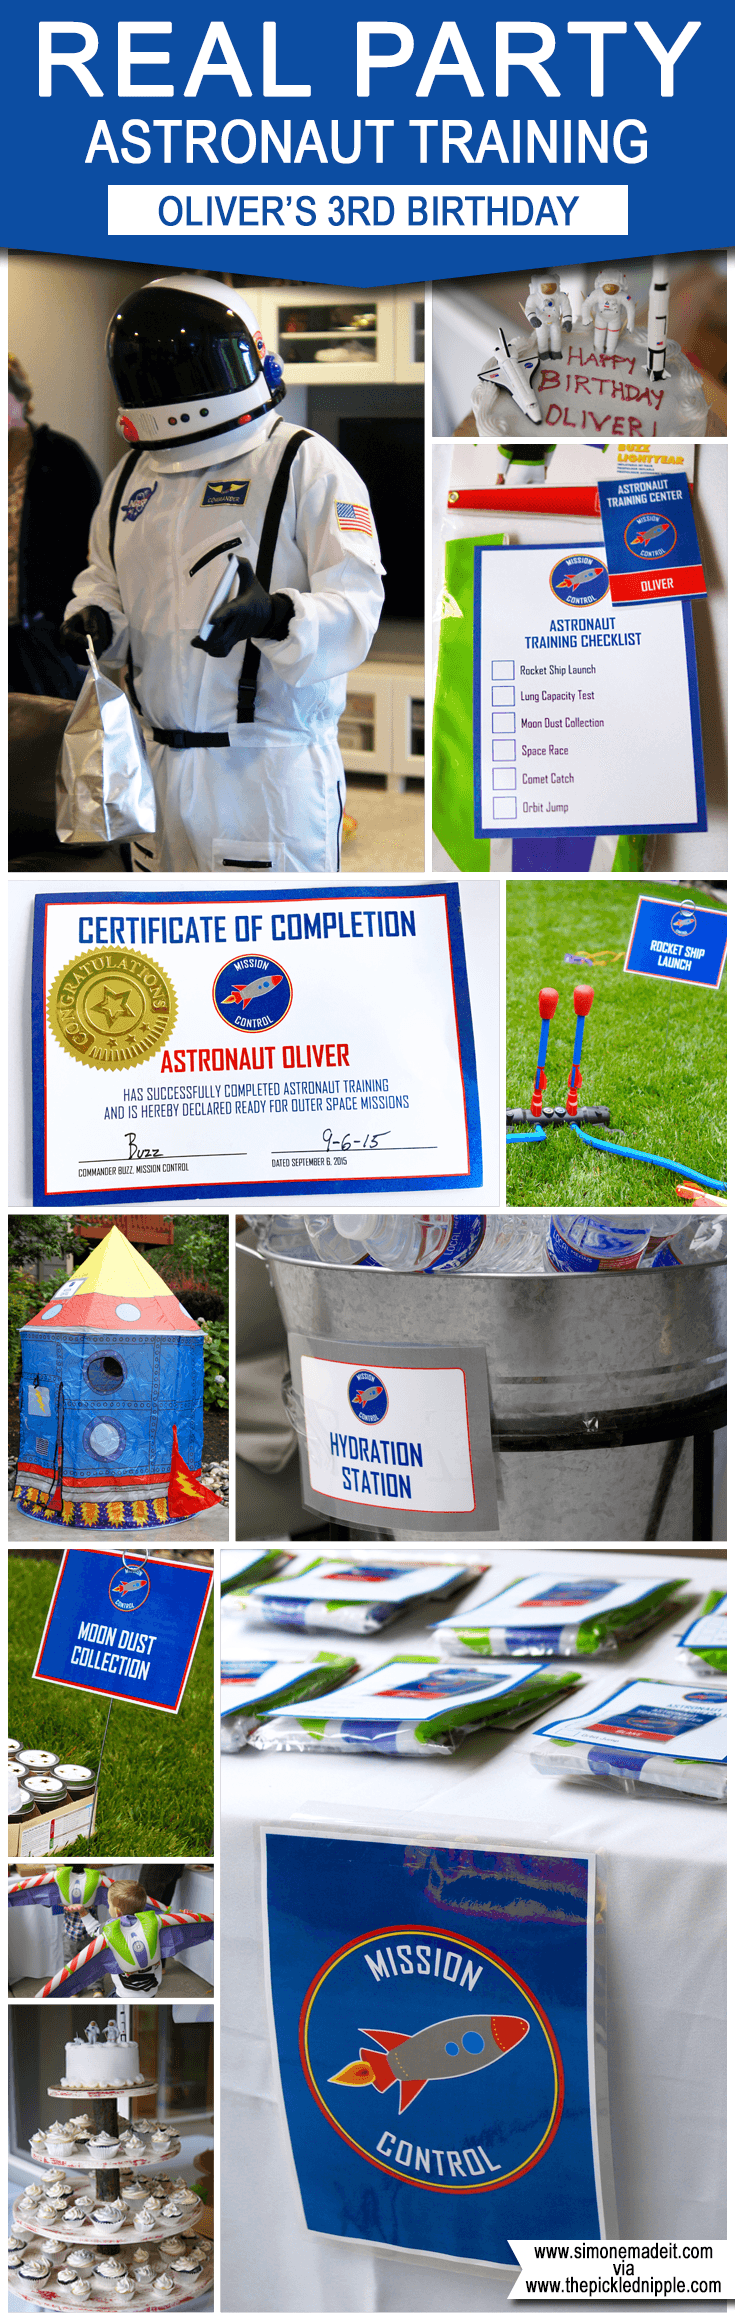 Oliver's Astronaut Training Birthday Party! Space party